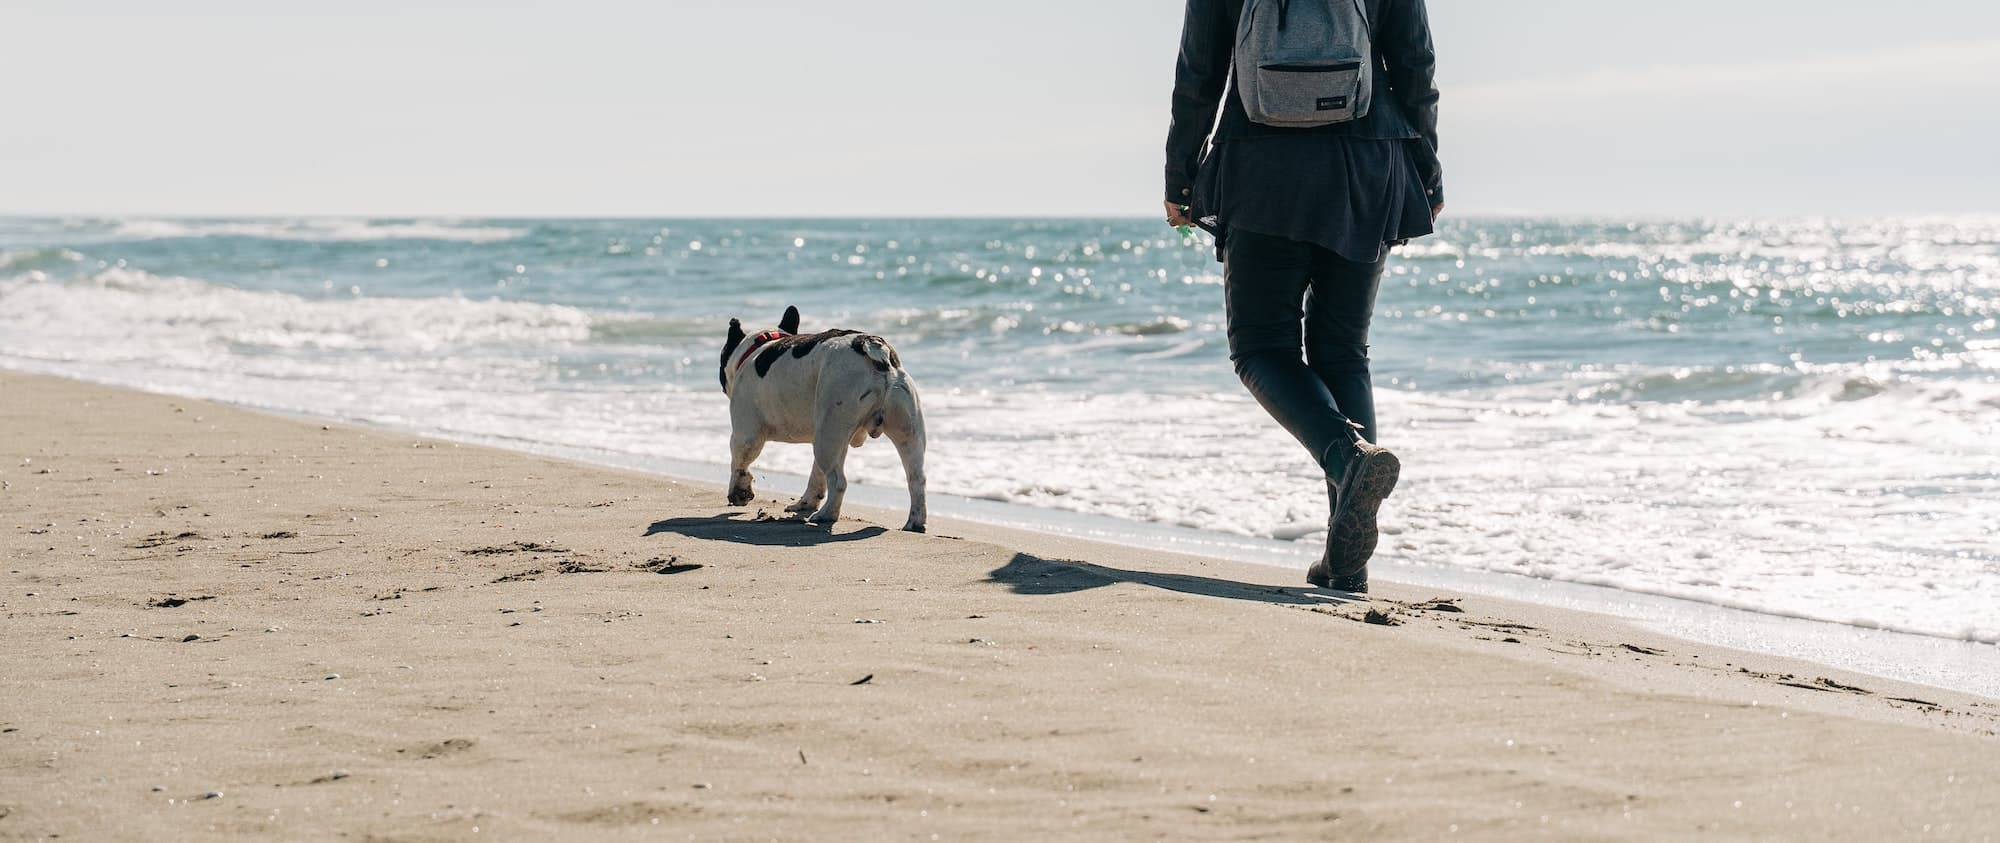 Dog owner and her dog walking on the beach